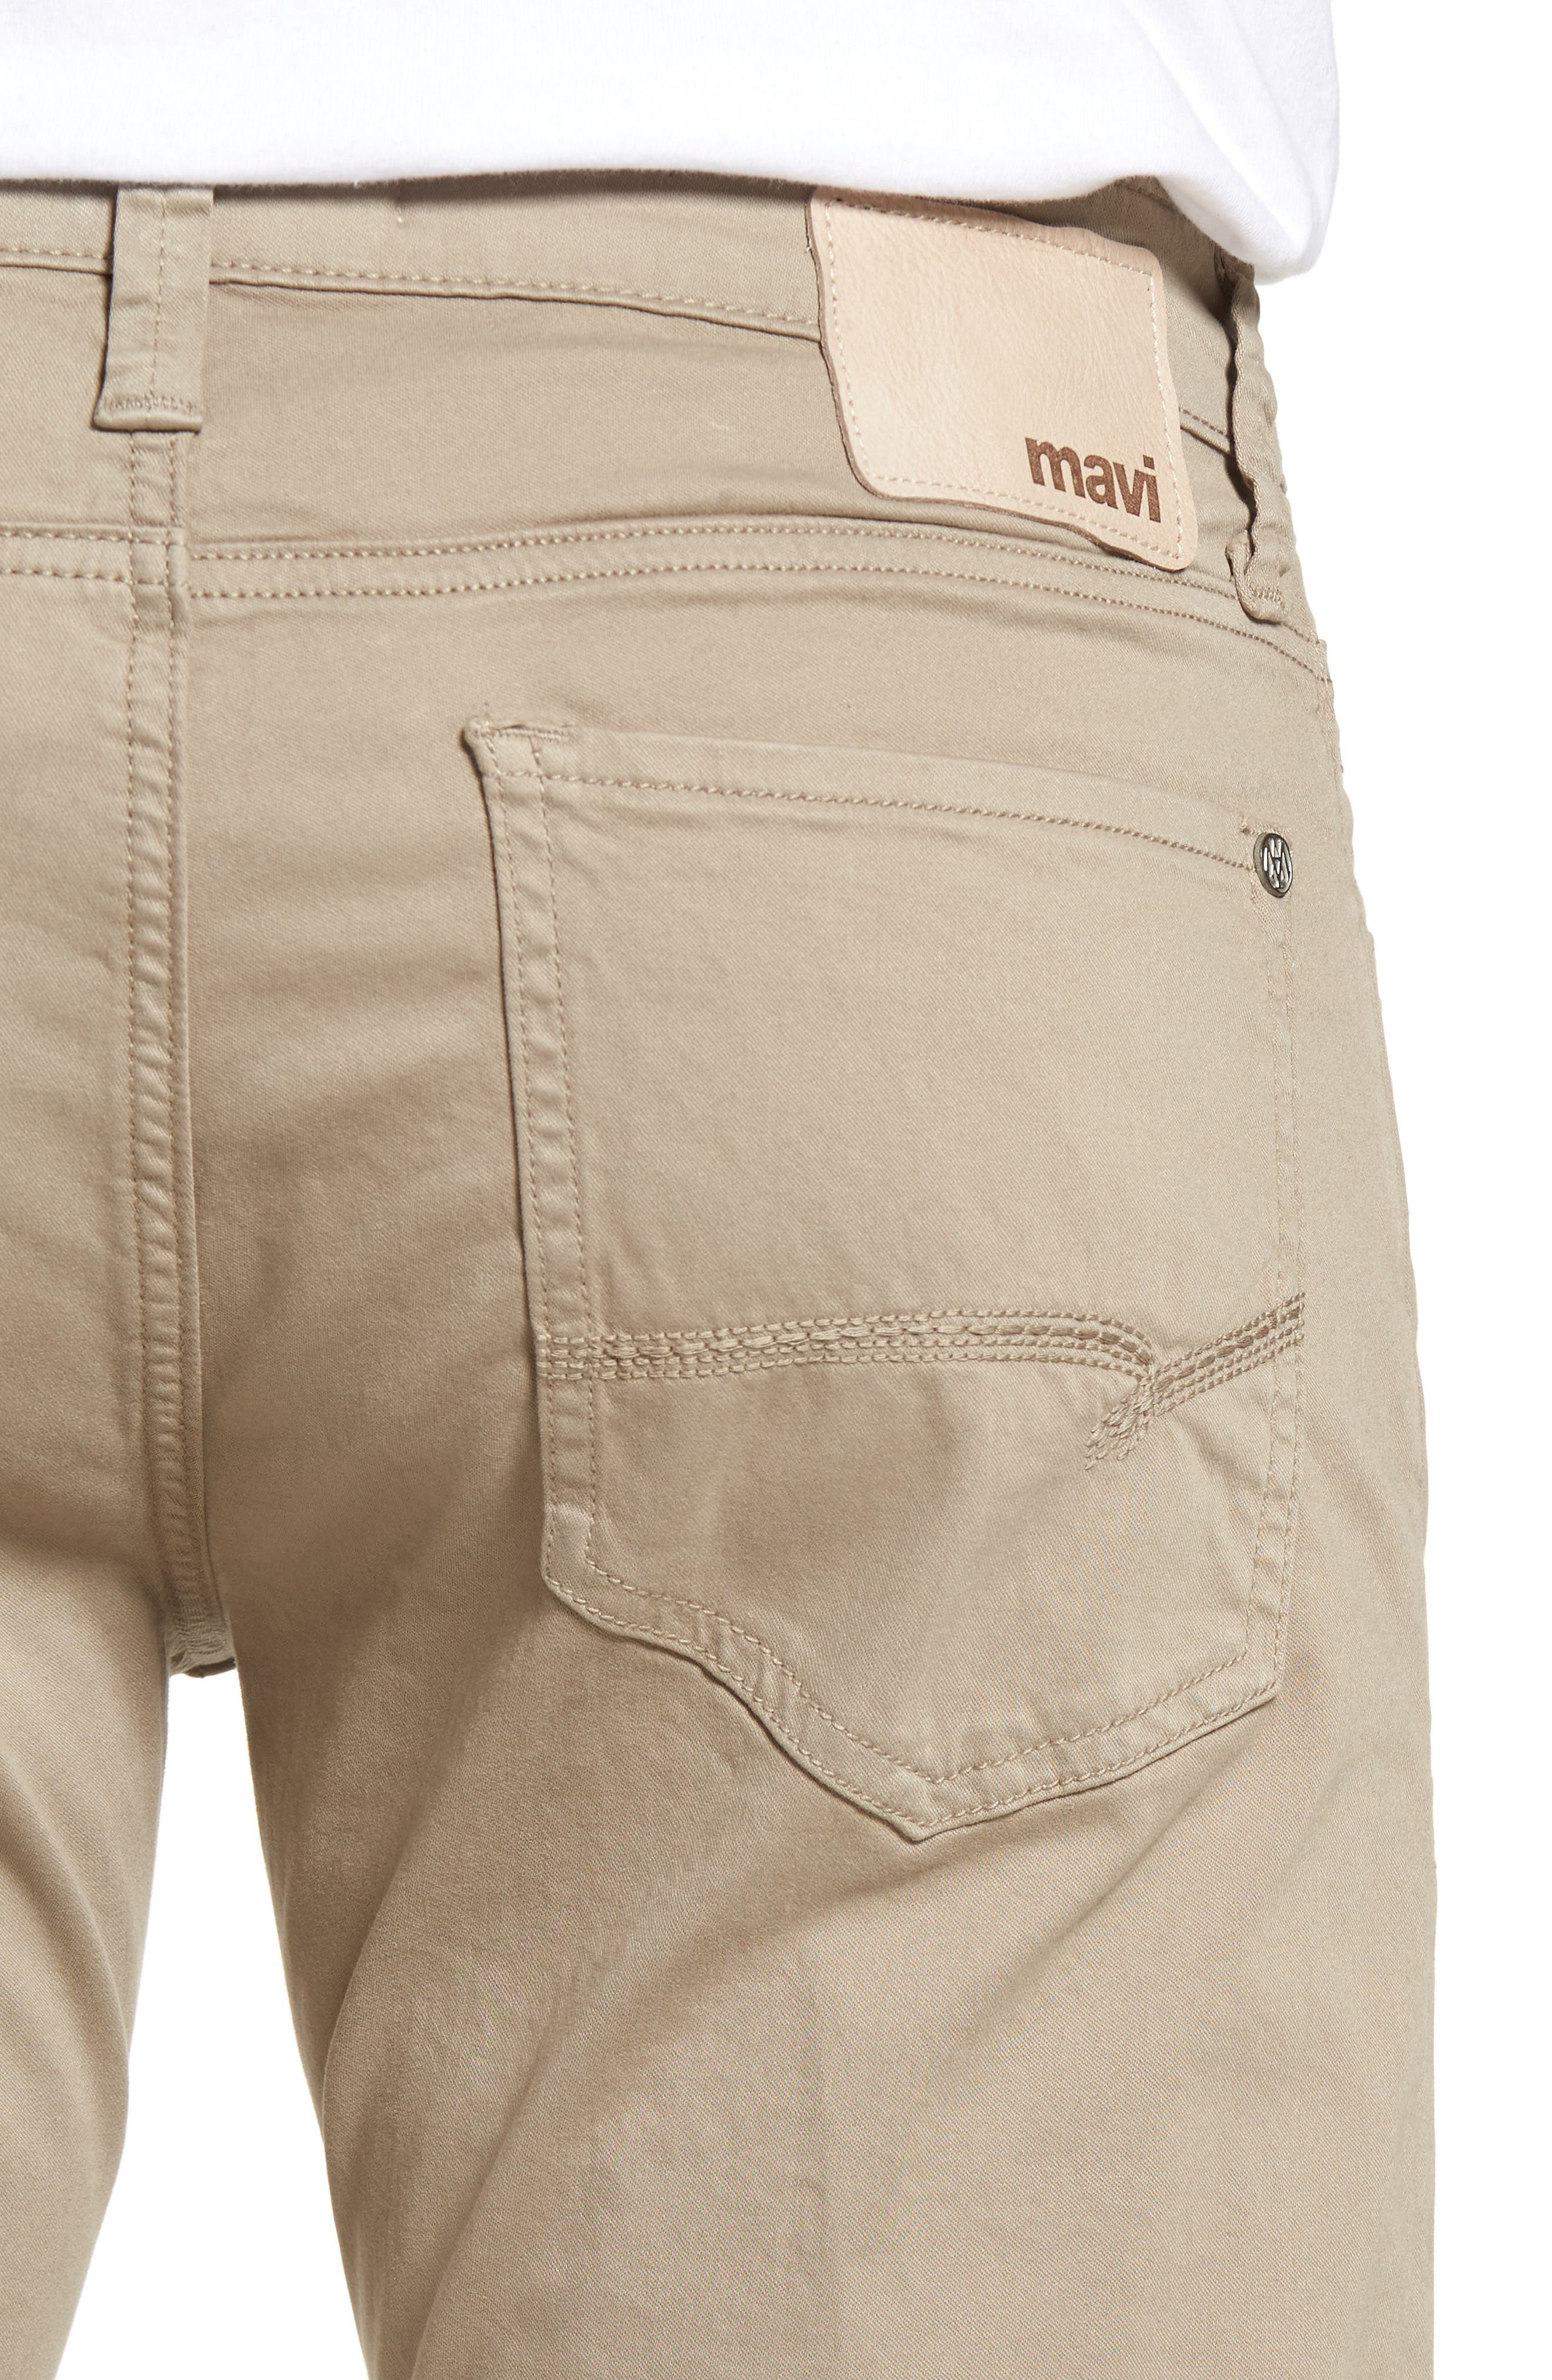 Zach Straight Leg Twill Pants,                             Alternate thumbnail 4, color,                             BEIGE TWILL